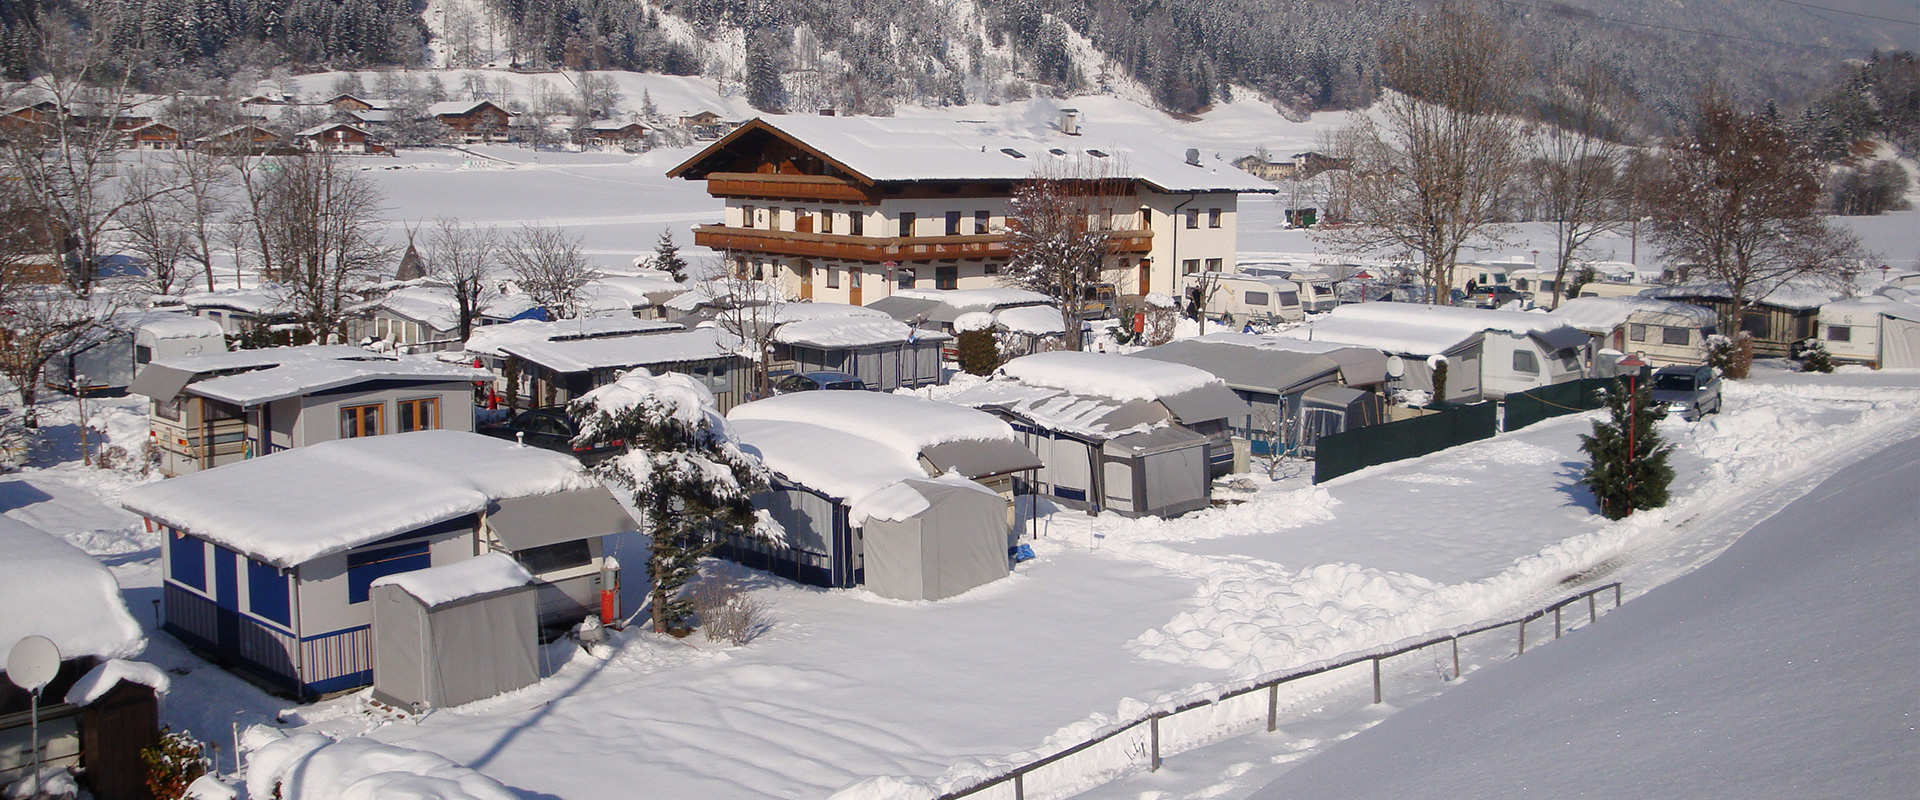 Camping Seehof in Kramsach am Reinthalersee